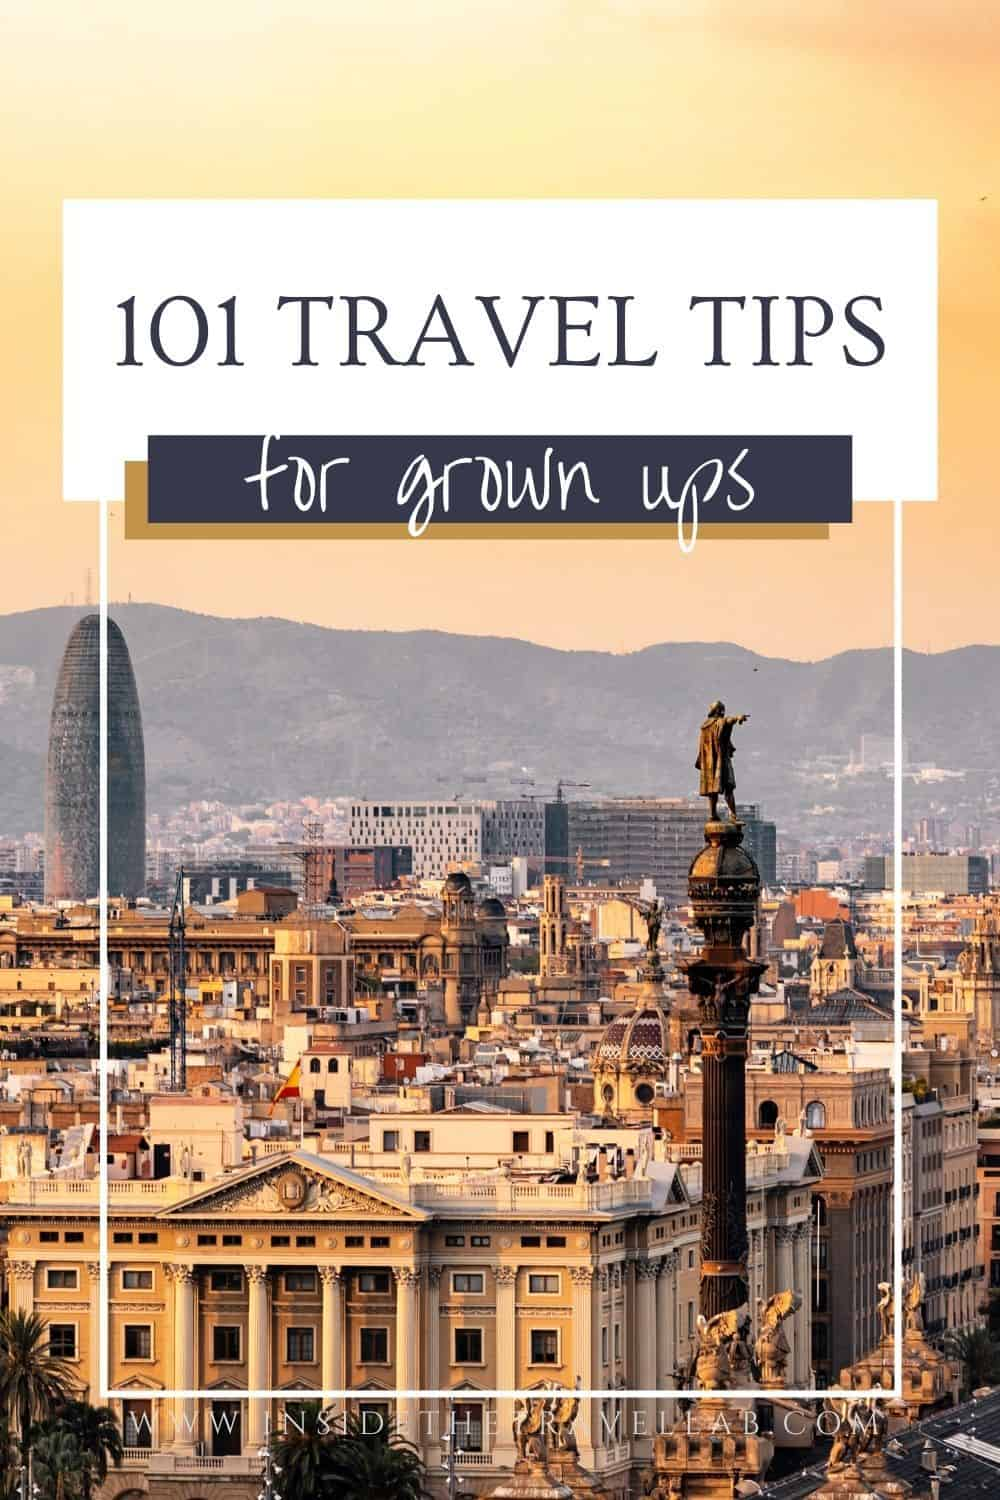 101 Travel Tips Cover